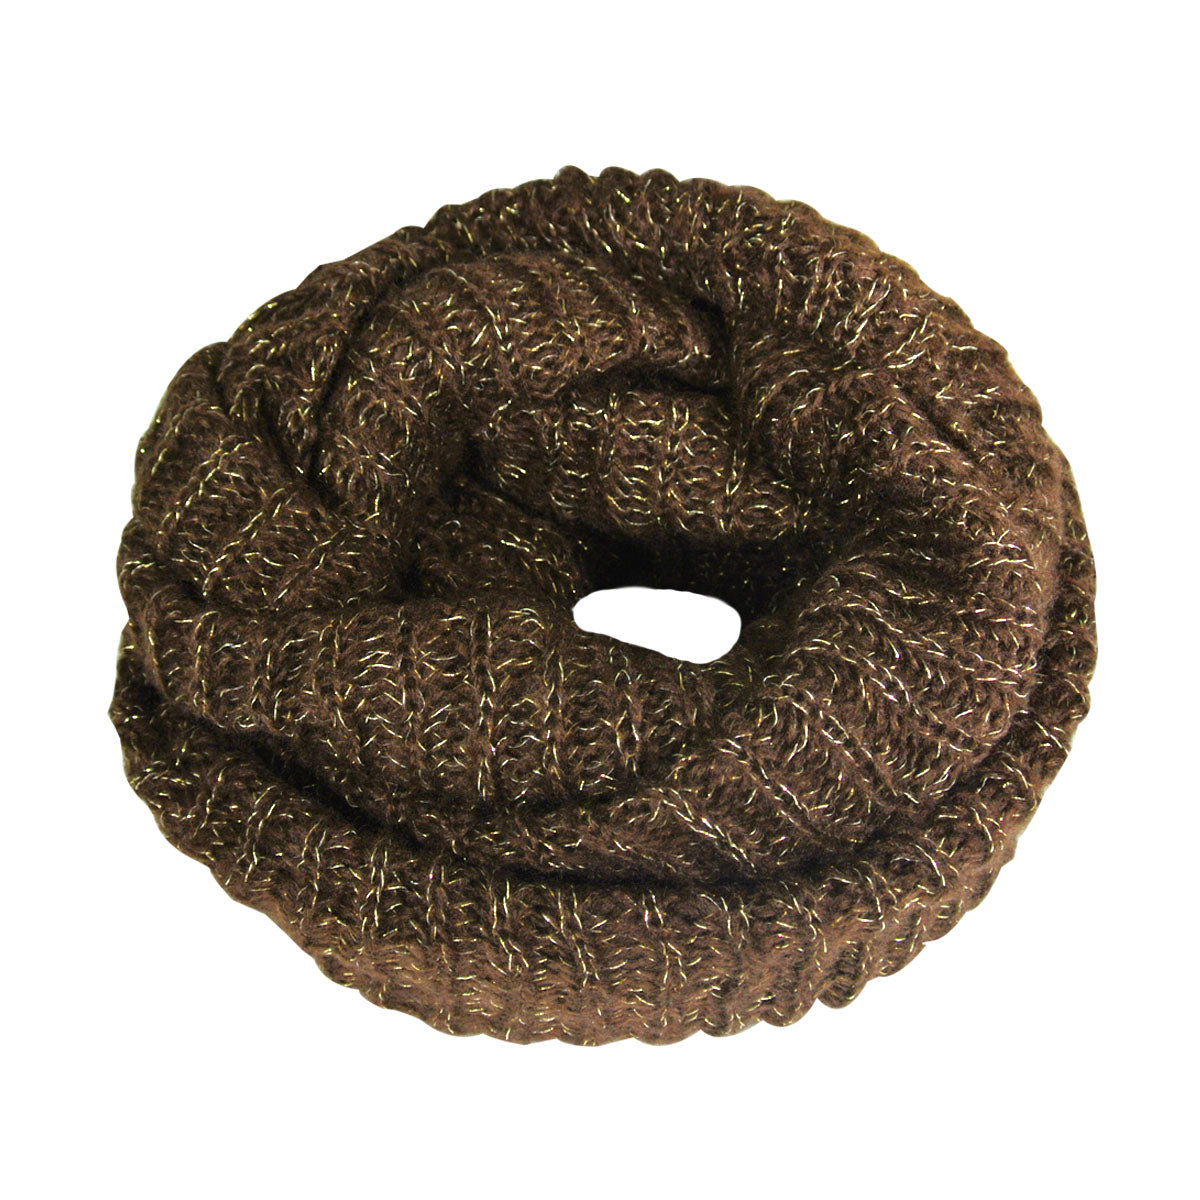 Premium Winter Knit Infinity Scarf with Metallic Gold Threading